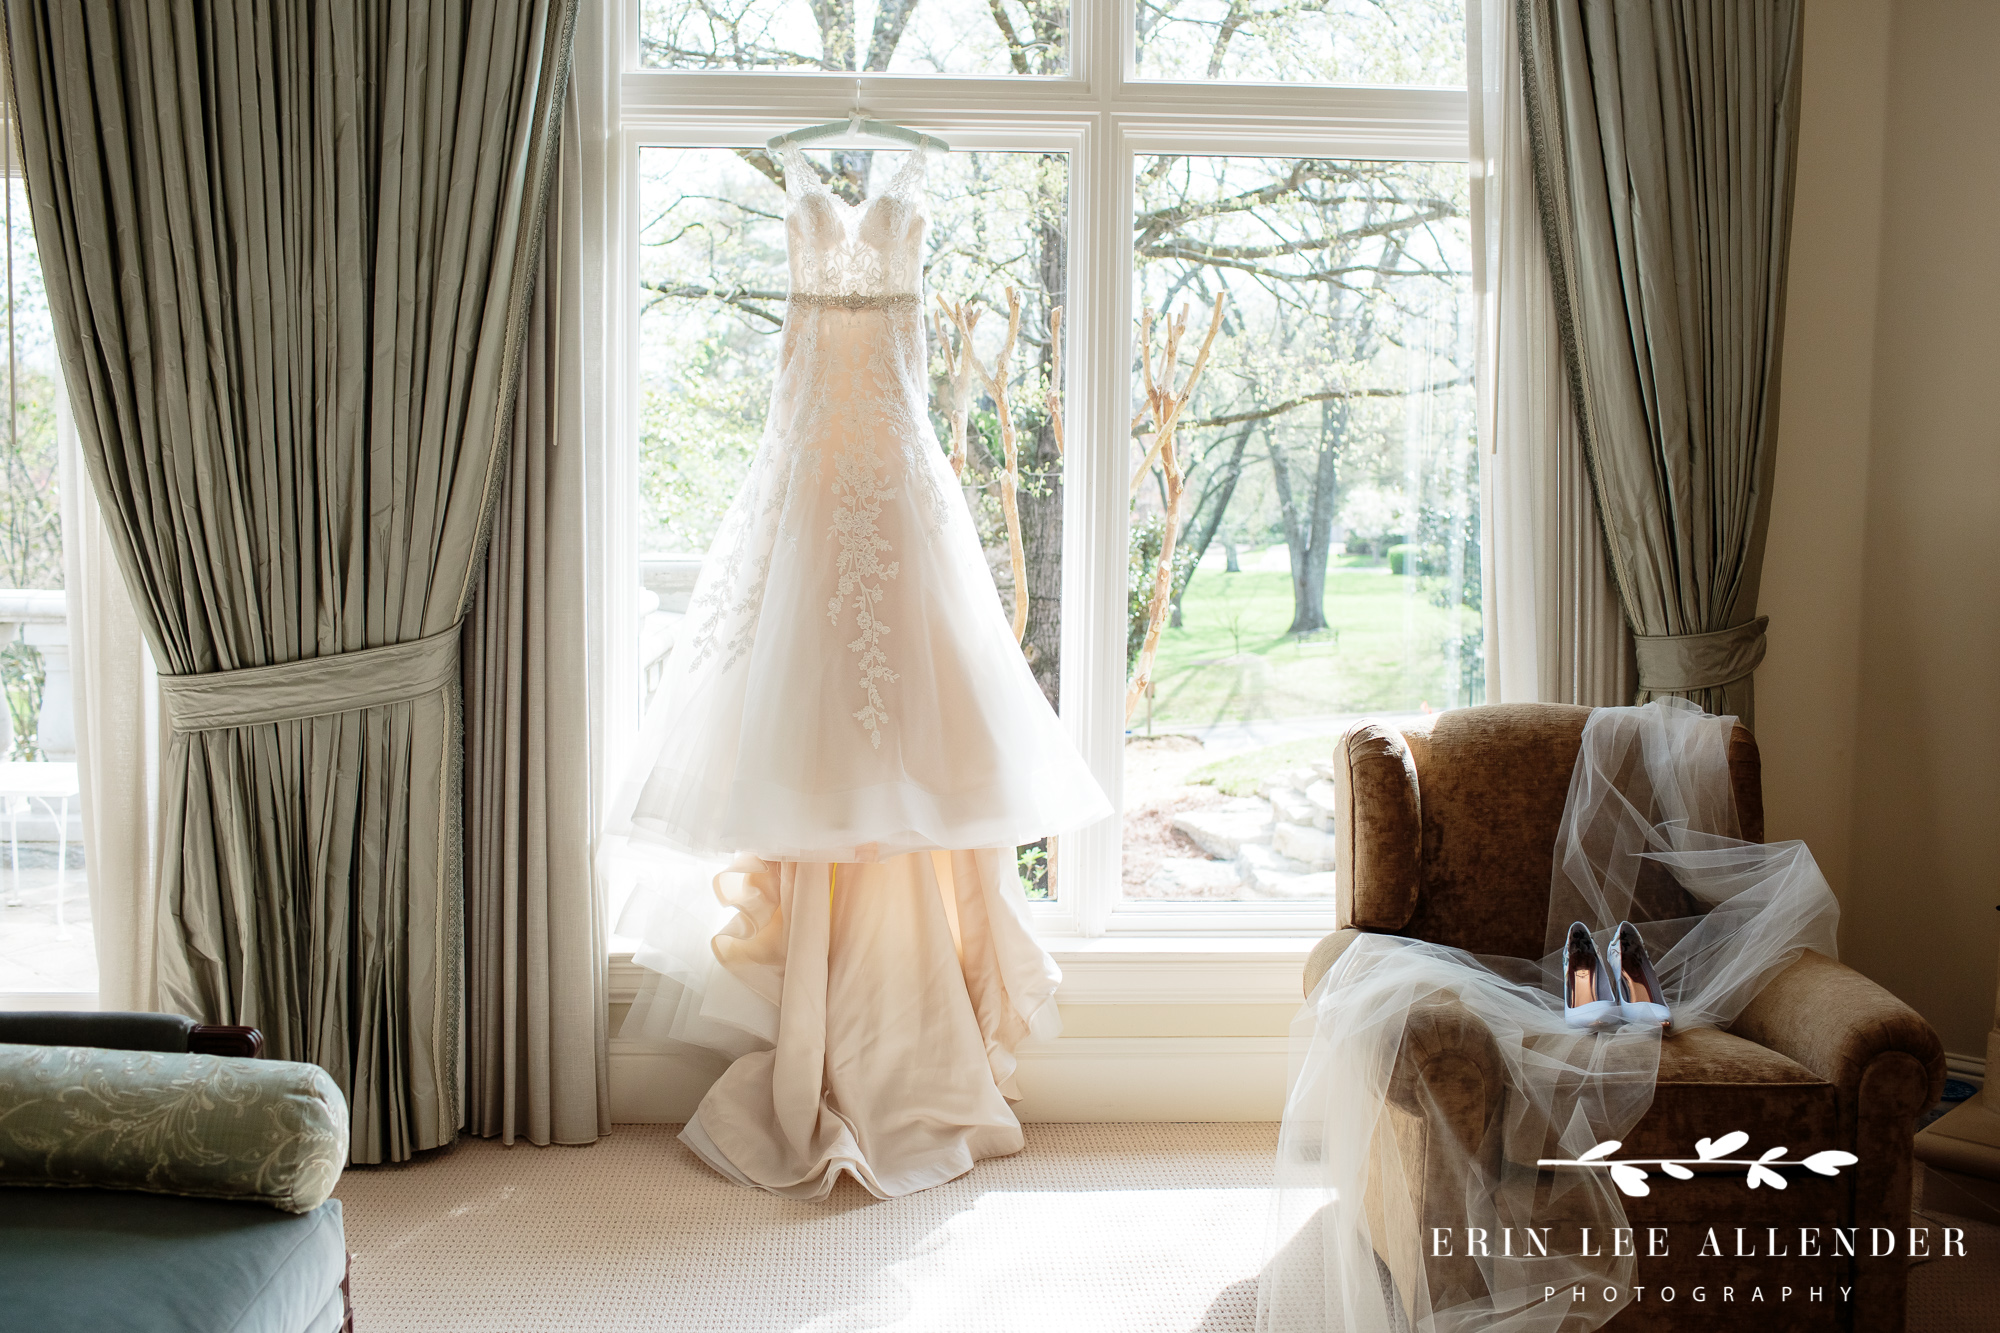 Wedding-gown-hanging-in-window